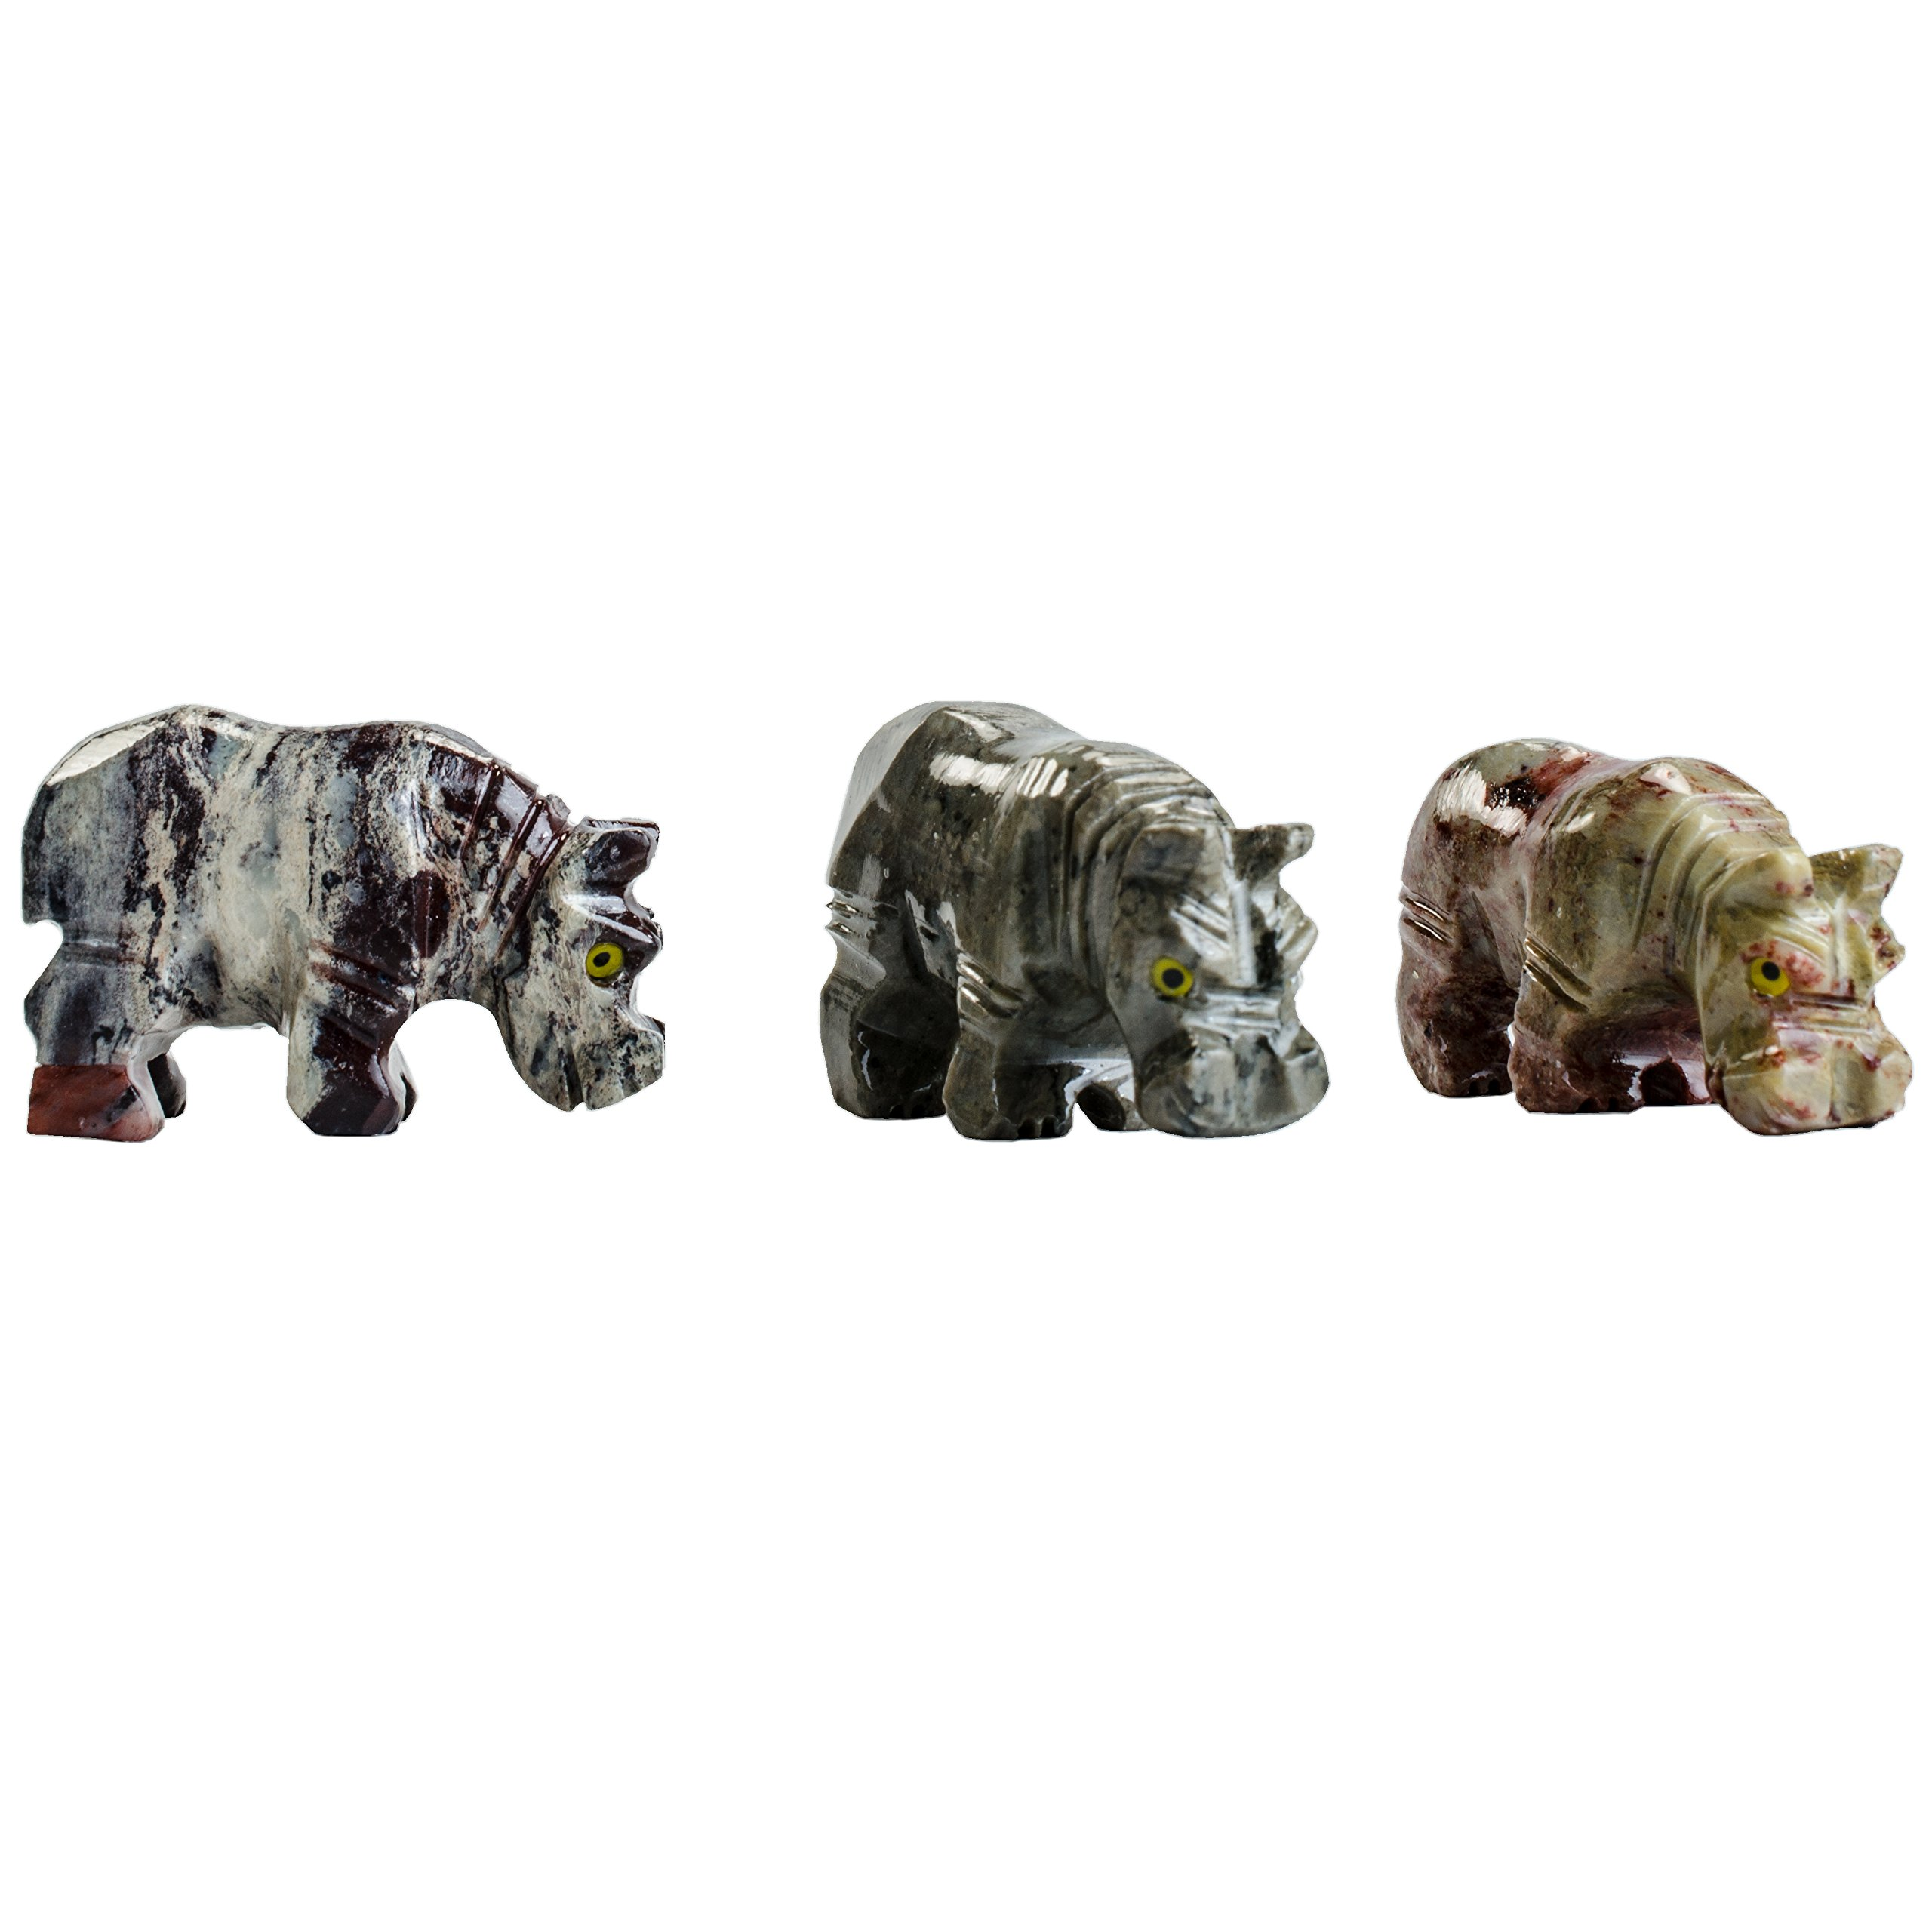 Digging Dolls : 30 pcs Artisan Hippo Collectable Animal Figurine - Party Favors, Stocking Stuffers, Gifts, Collecting and More!